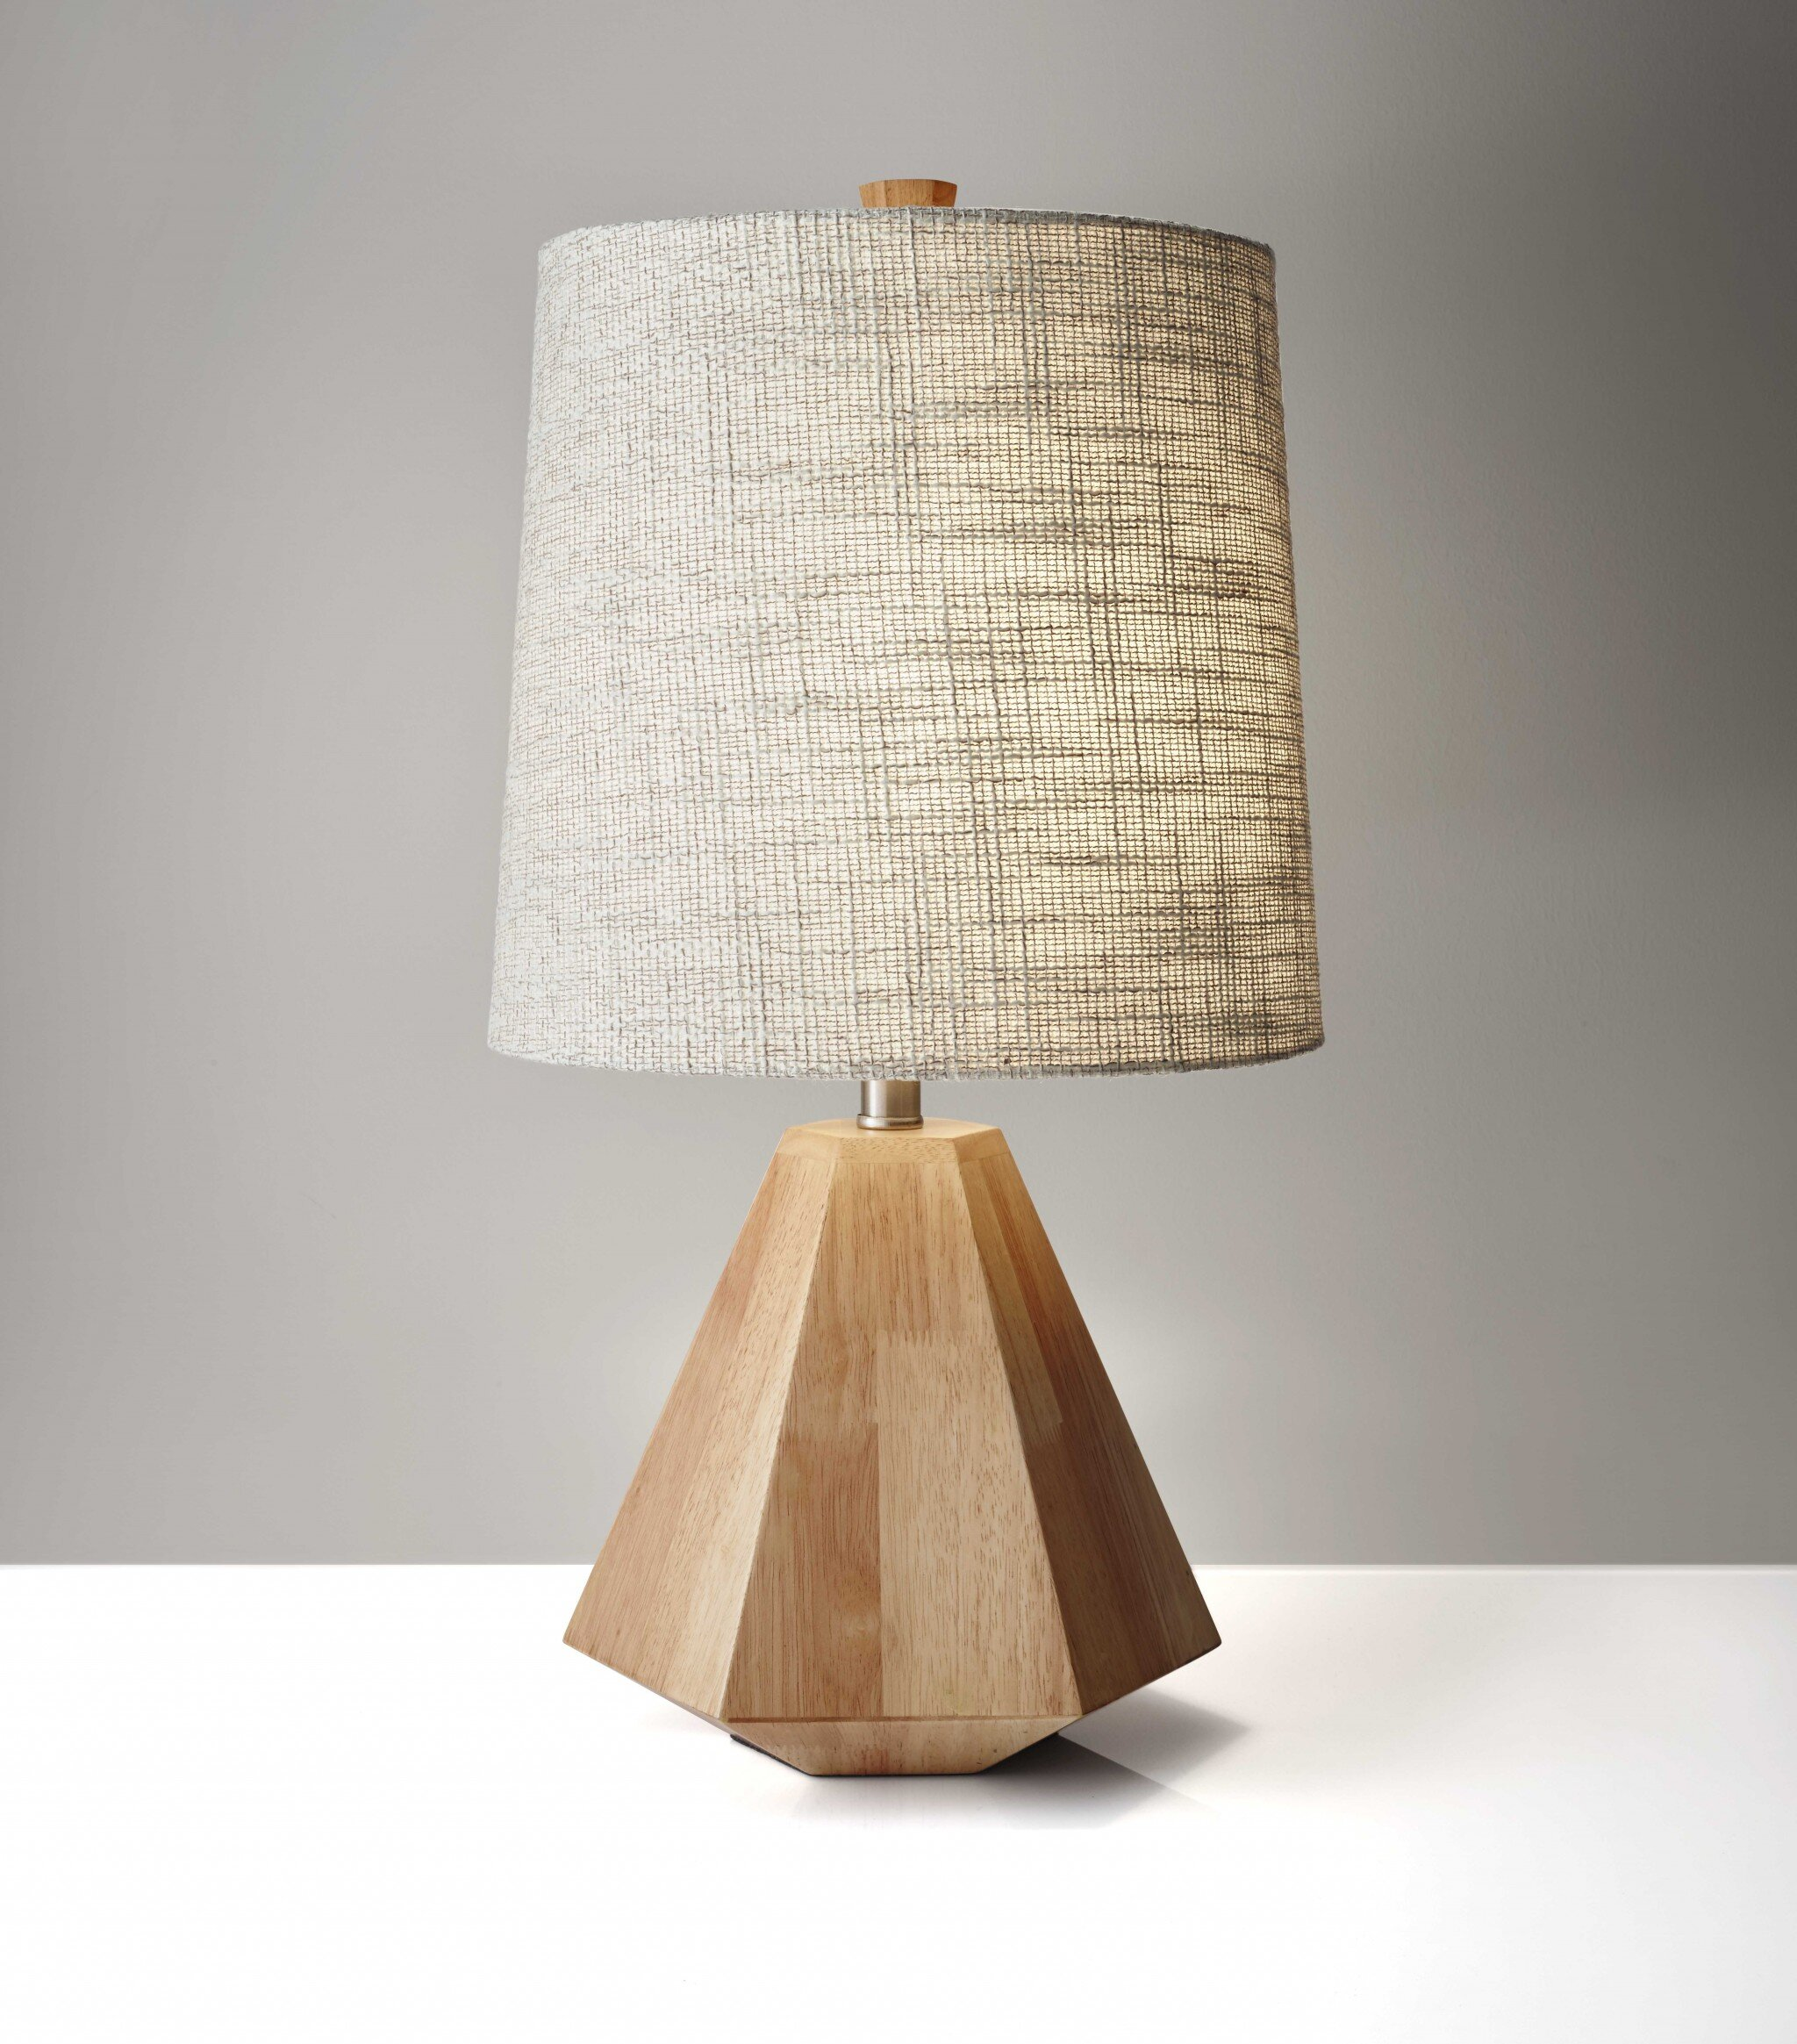 Medium Mid Century Modern Table Lamps You Ll Love In 2021 Wayfair